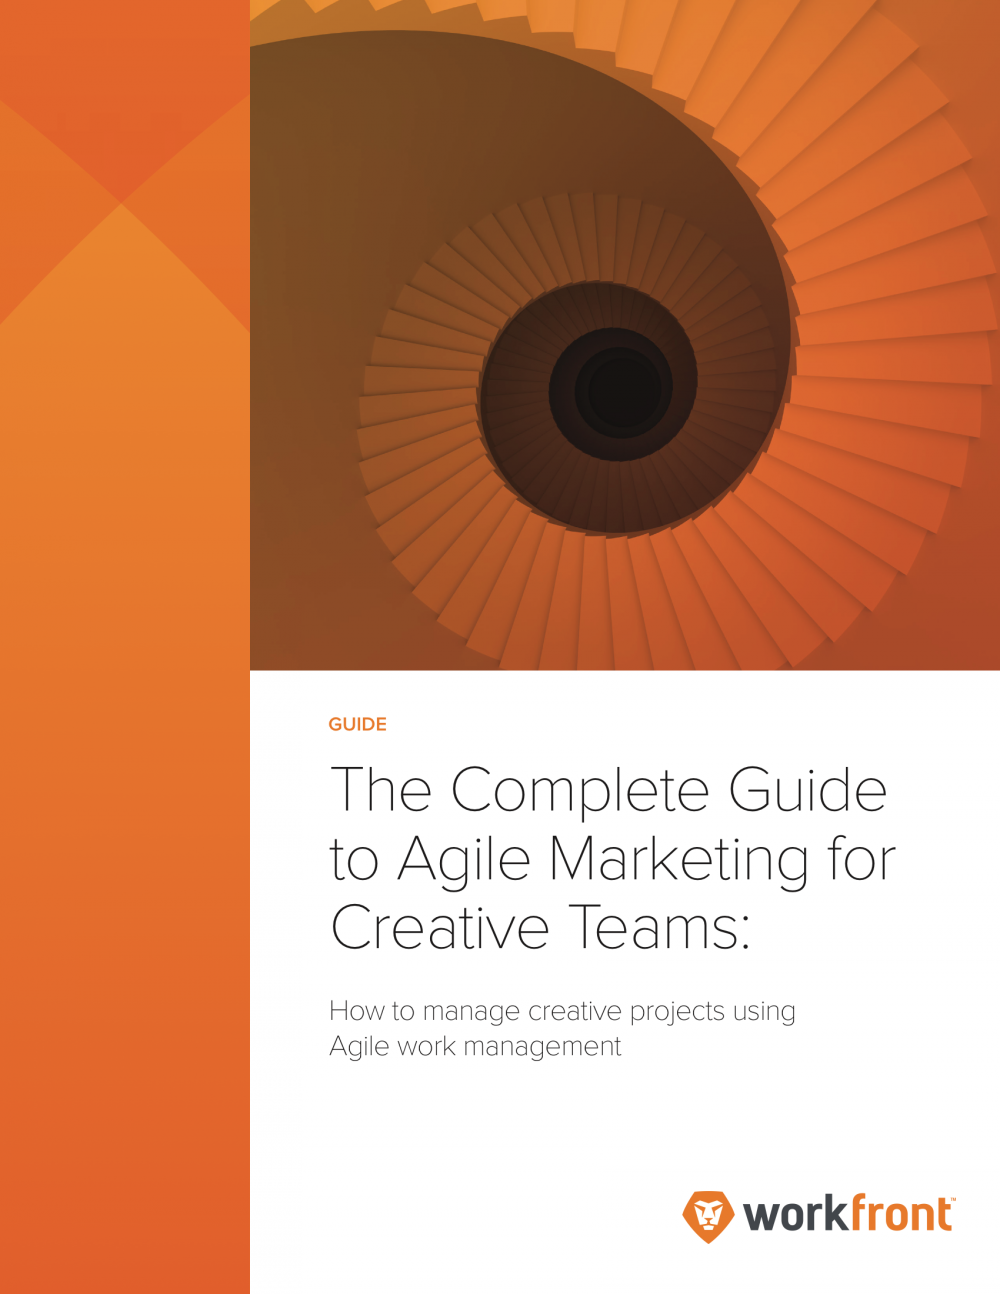 Agile Marketing for Creative Teams